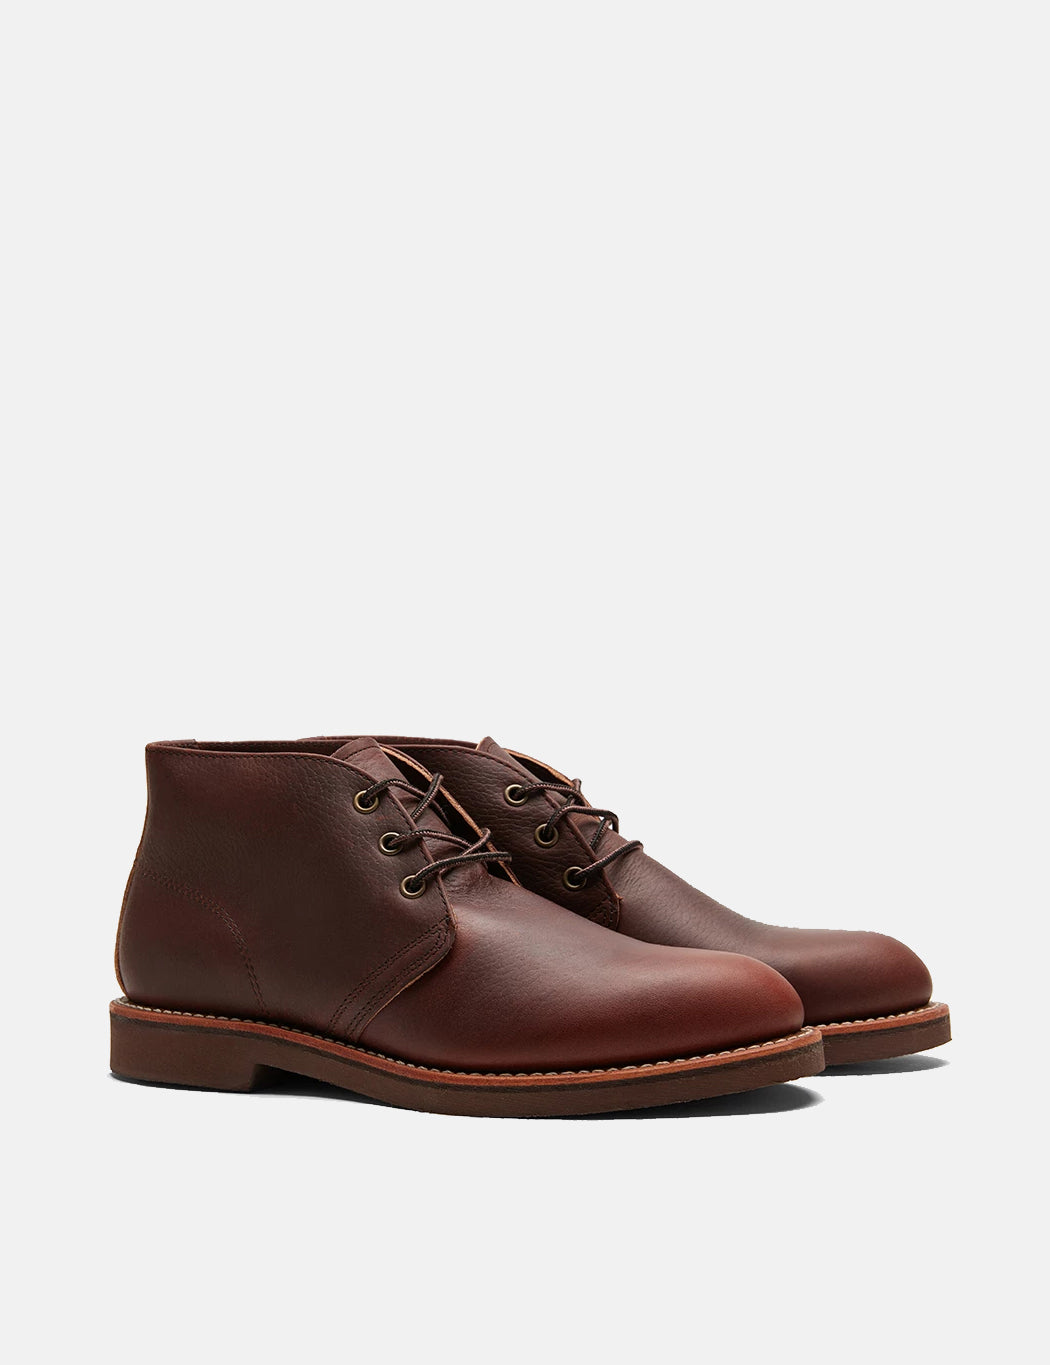 Red Wing Foreman Chukka Boots (9125) - Brown Briar Oil Slick